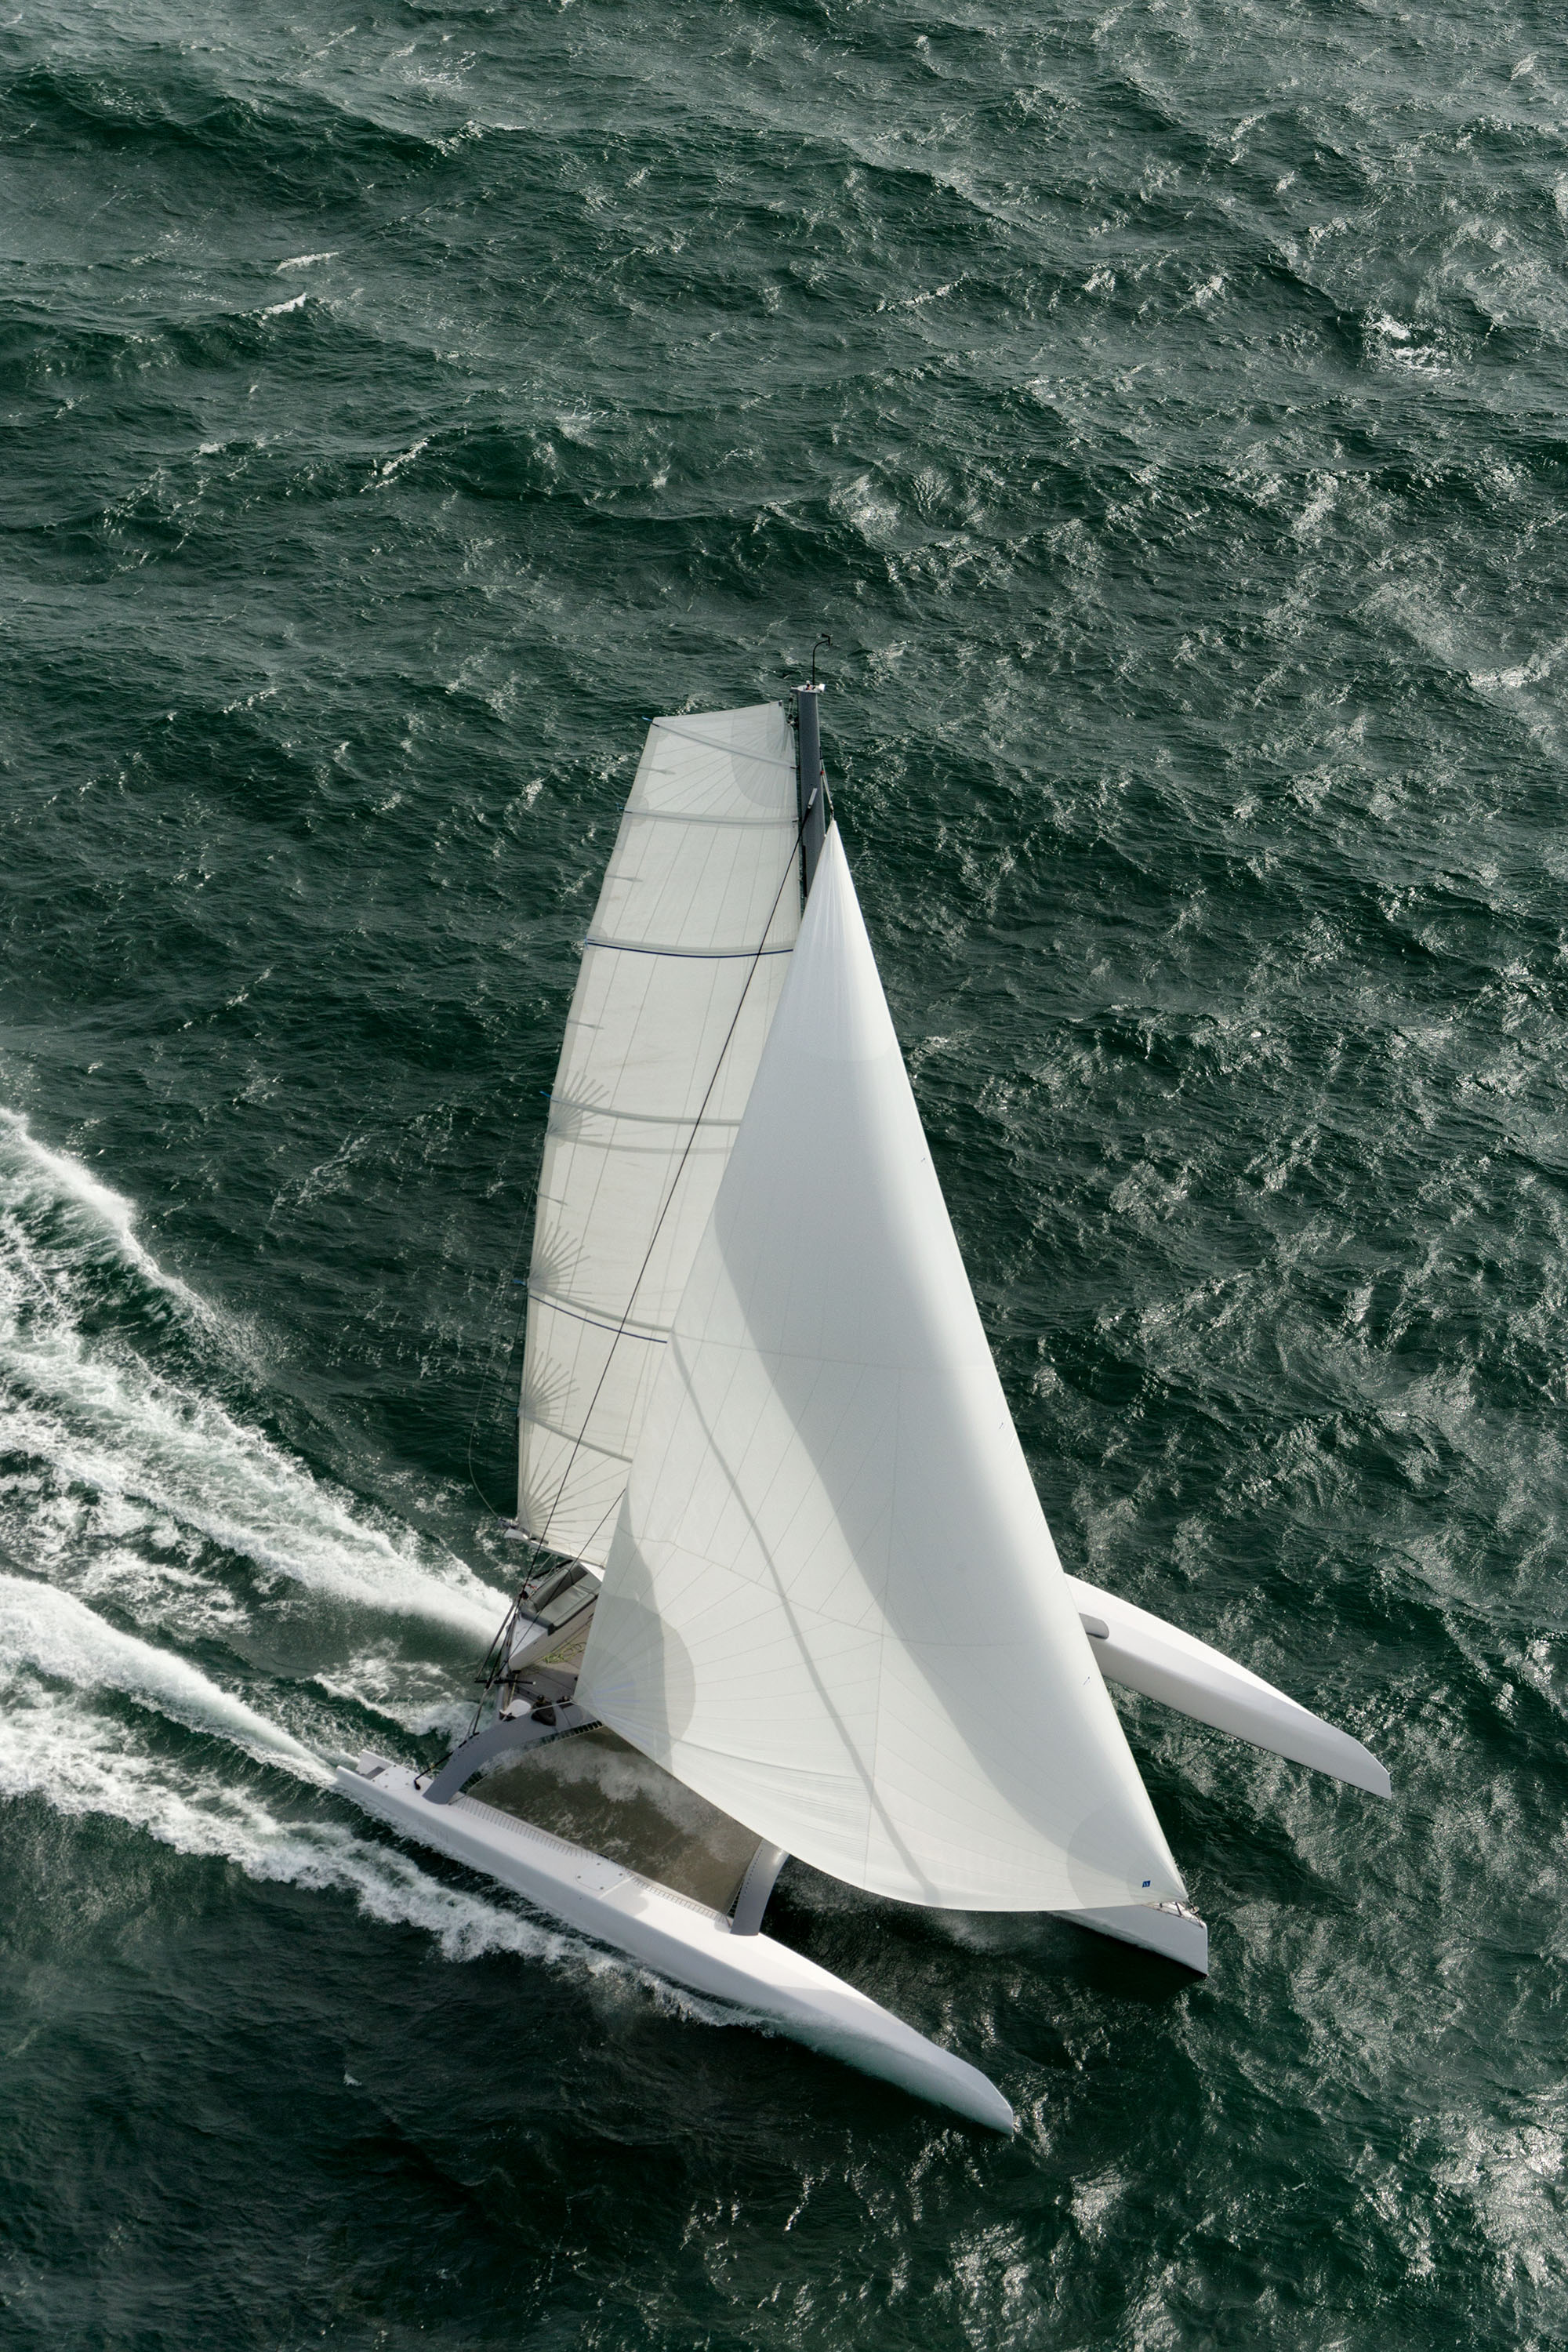 Balance - A trimaran provides the greatest righting moment between monohulls, catamarans, and trimarans.A properly designed trimaran will give you the most stable platform in any sea state.A monohull's response to wind is to heel first and then move, spilling power initially. Unlike a catamaran which carries its mast on an unsupported bridgedeck, a trimaran carries its mast is on the main hull.Since the windward ama on a trimaran is always flying, this additional leverage provides valuable righting moment when power reaching and in gusty conditions.Therefore, the response of FINN with the additional advantage of a canting rig is to heel less and go more.